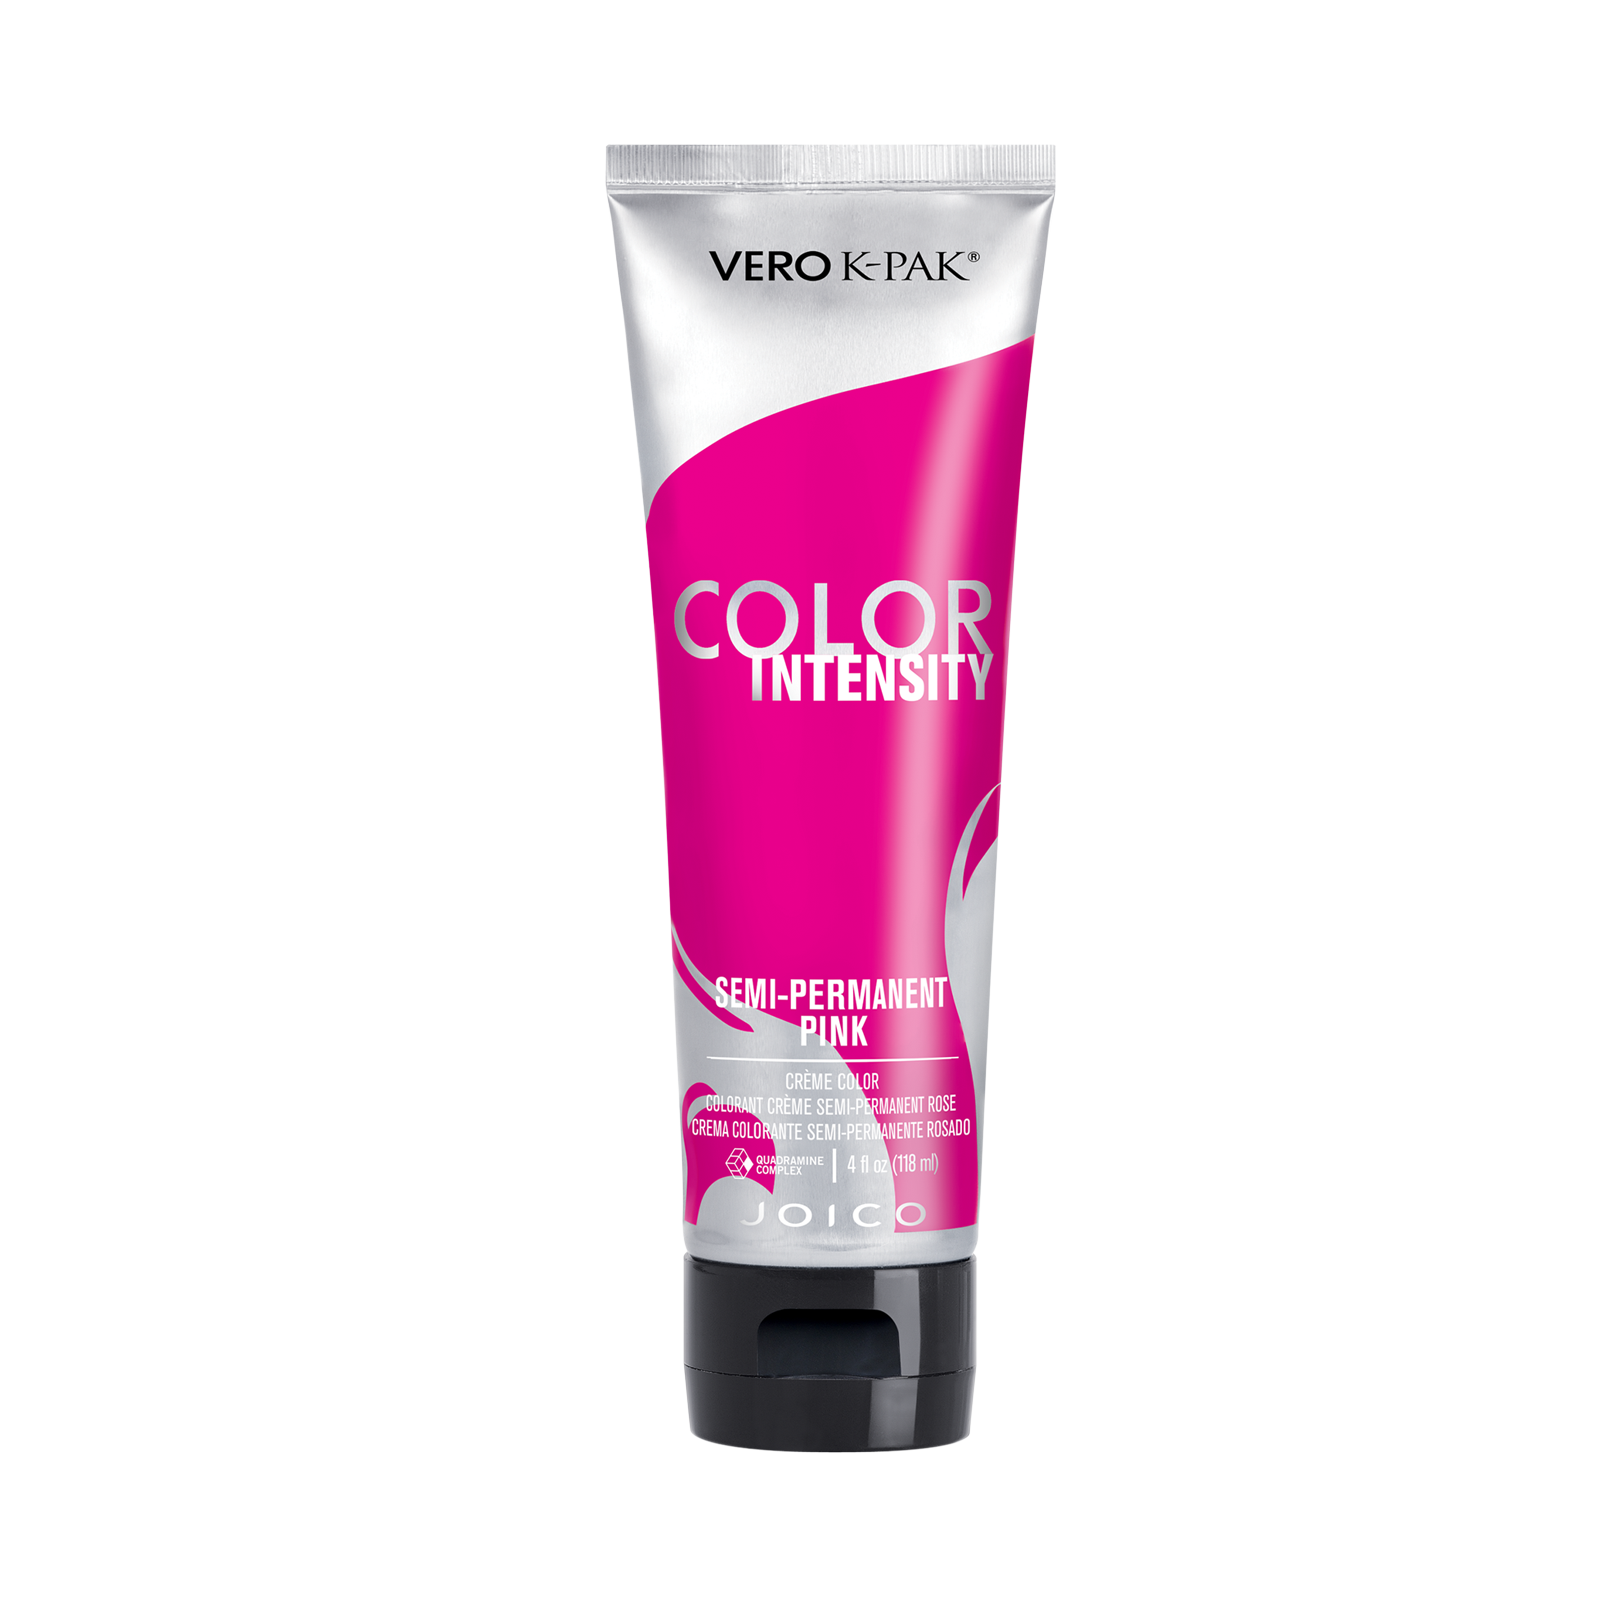 Vero K-Pak Color Intensity